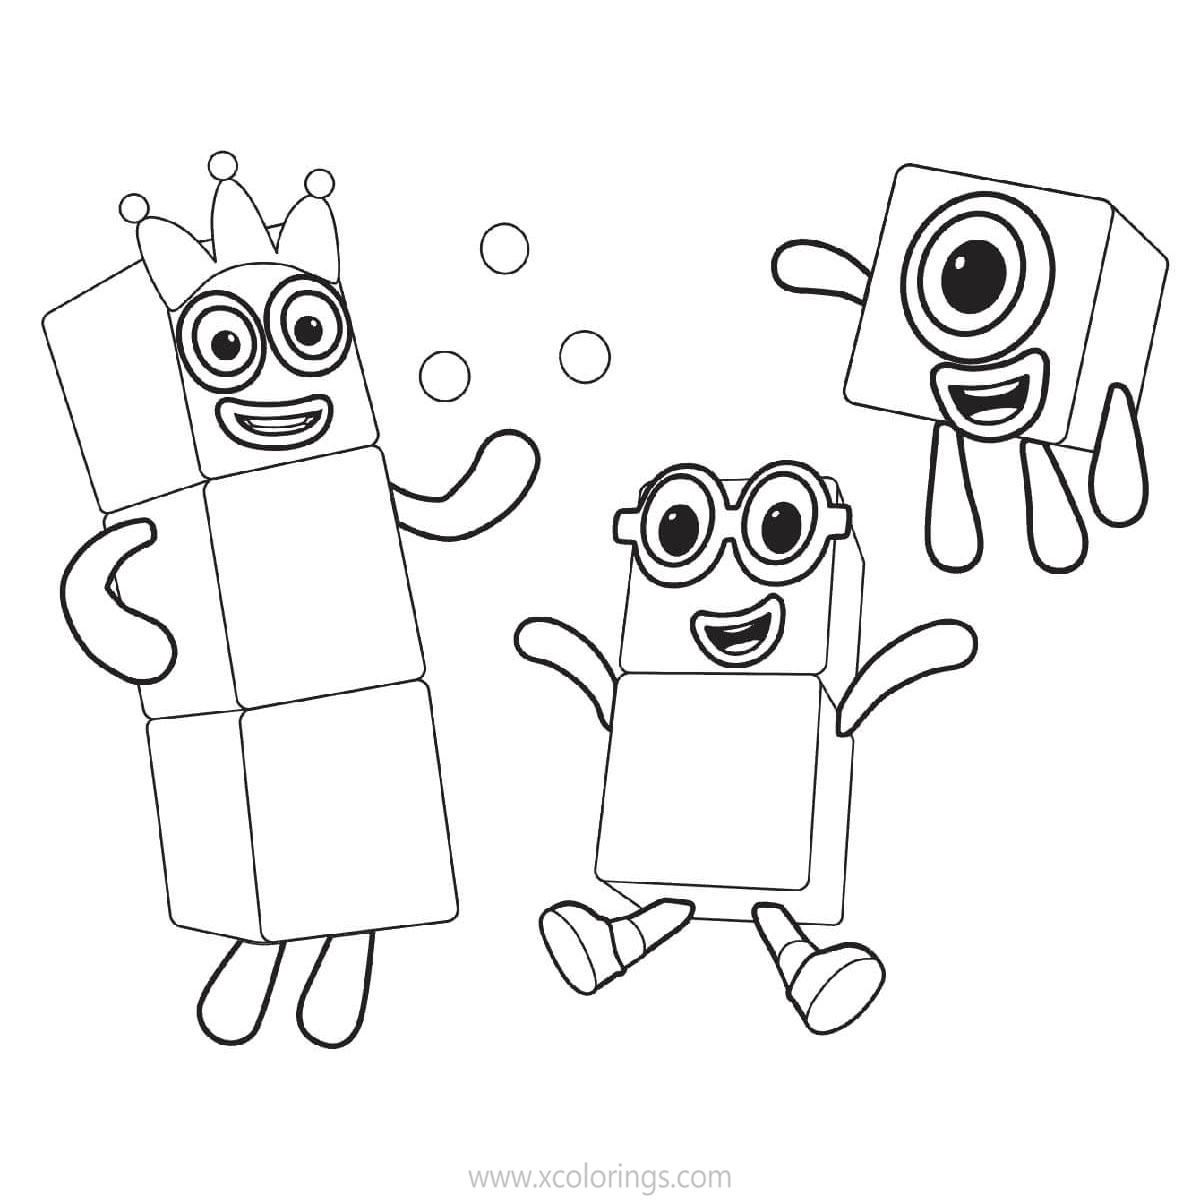 Numberblocks Coloring Pages 1 to 10 - XColorings.com